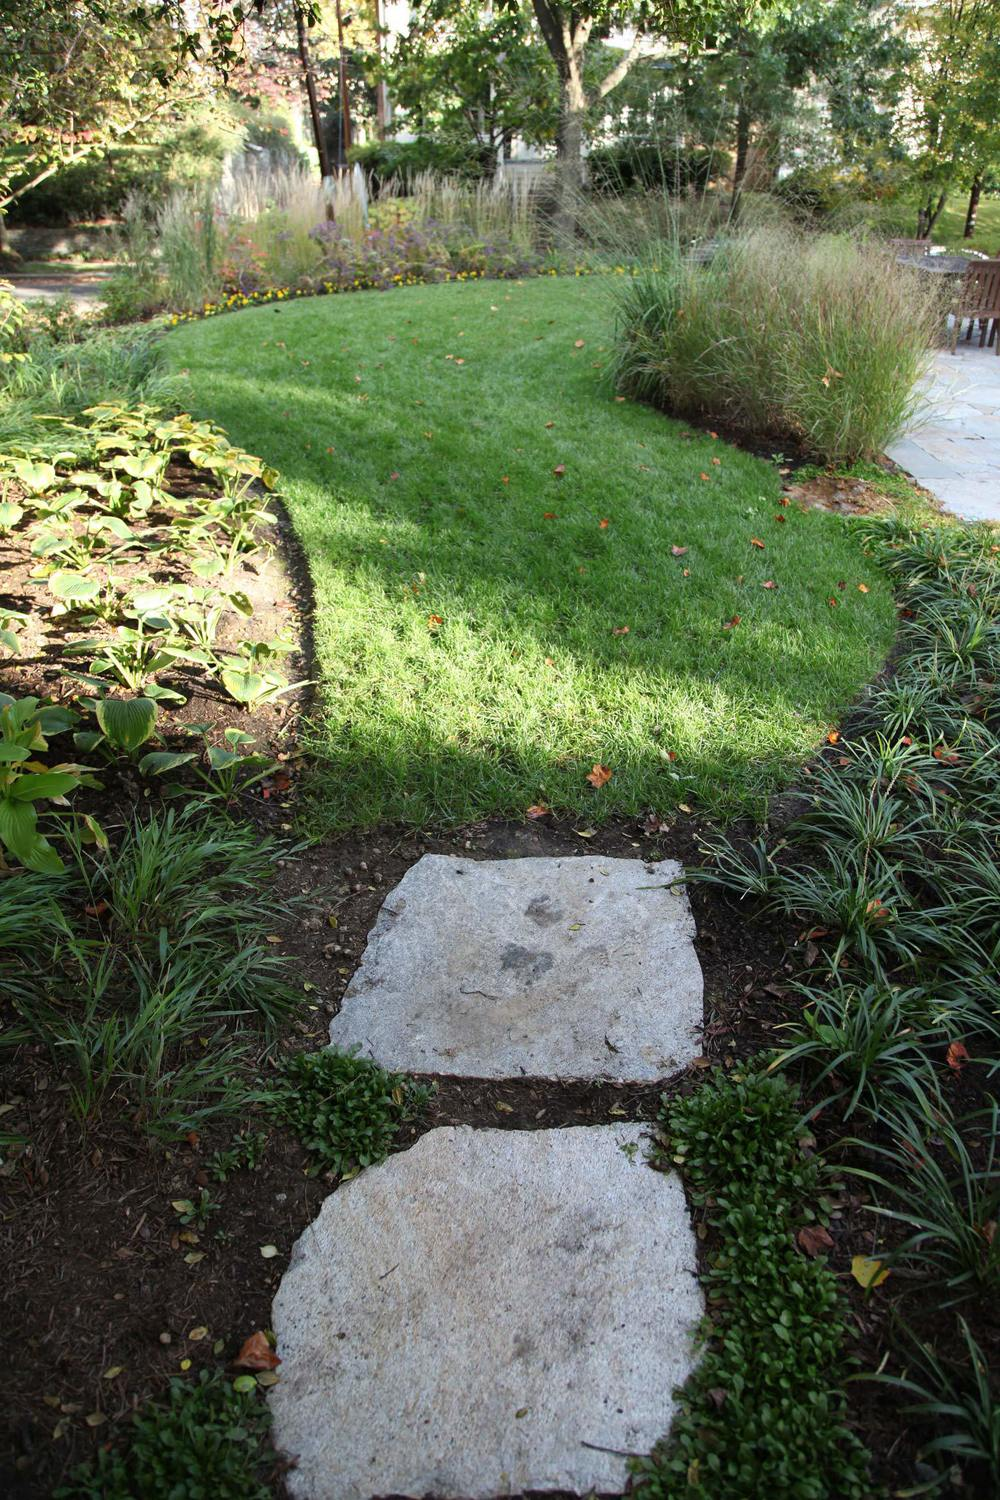 Project Location:  Washington, DC (Chevy Chase)  Completion:  Fall 2011  General Contractor:  JM Landscaping  Primary Material Palette:  Old Spruce Mtn. flagstone, select blue thermal finish bluestone, ipe, pine straw  Photos By:  Moody Landscape Architecture (unless noted otherwise)